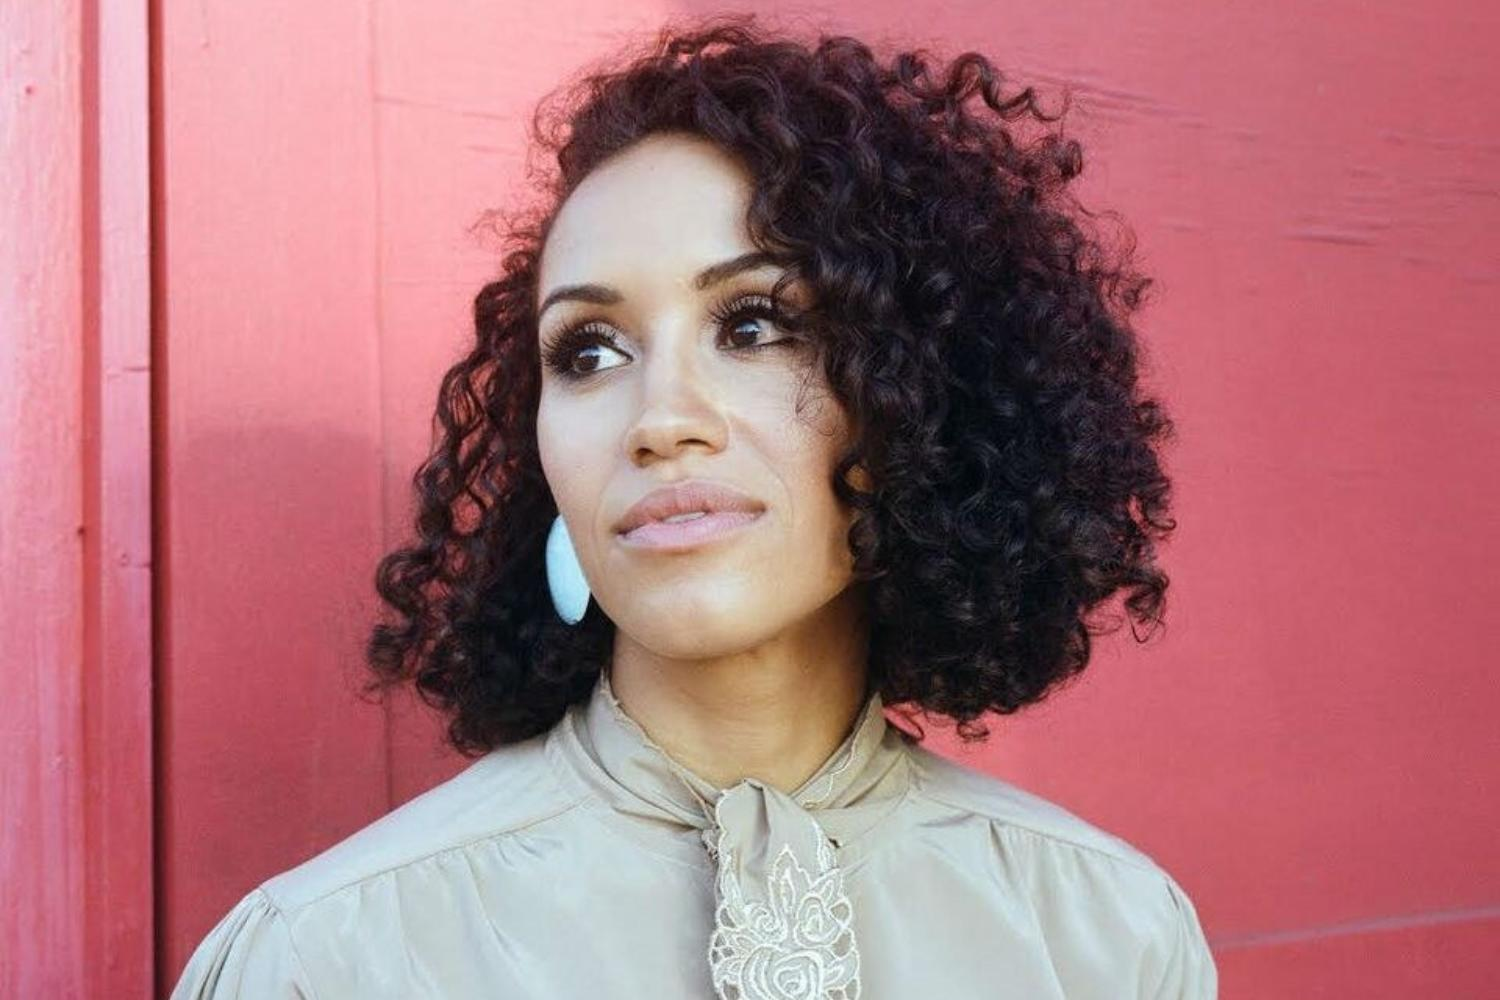 Kadhja Bonet announces new album 'Childqueen'